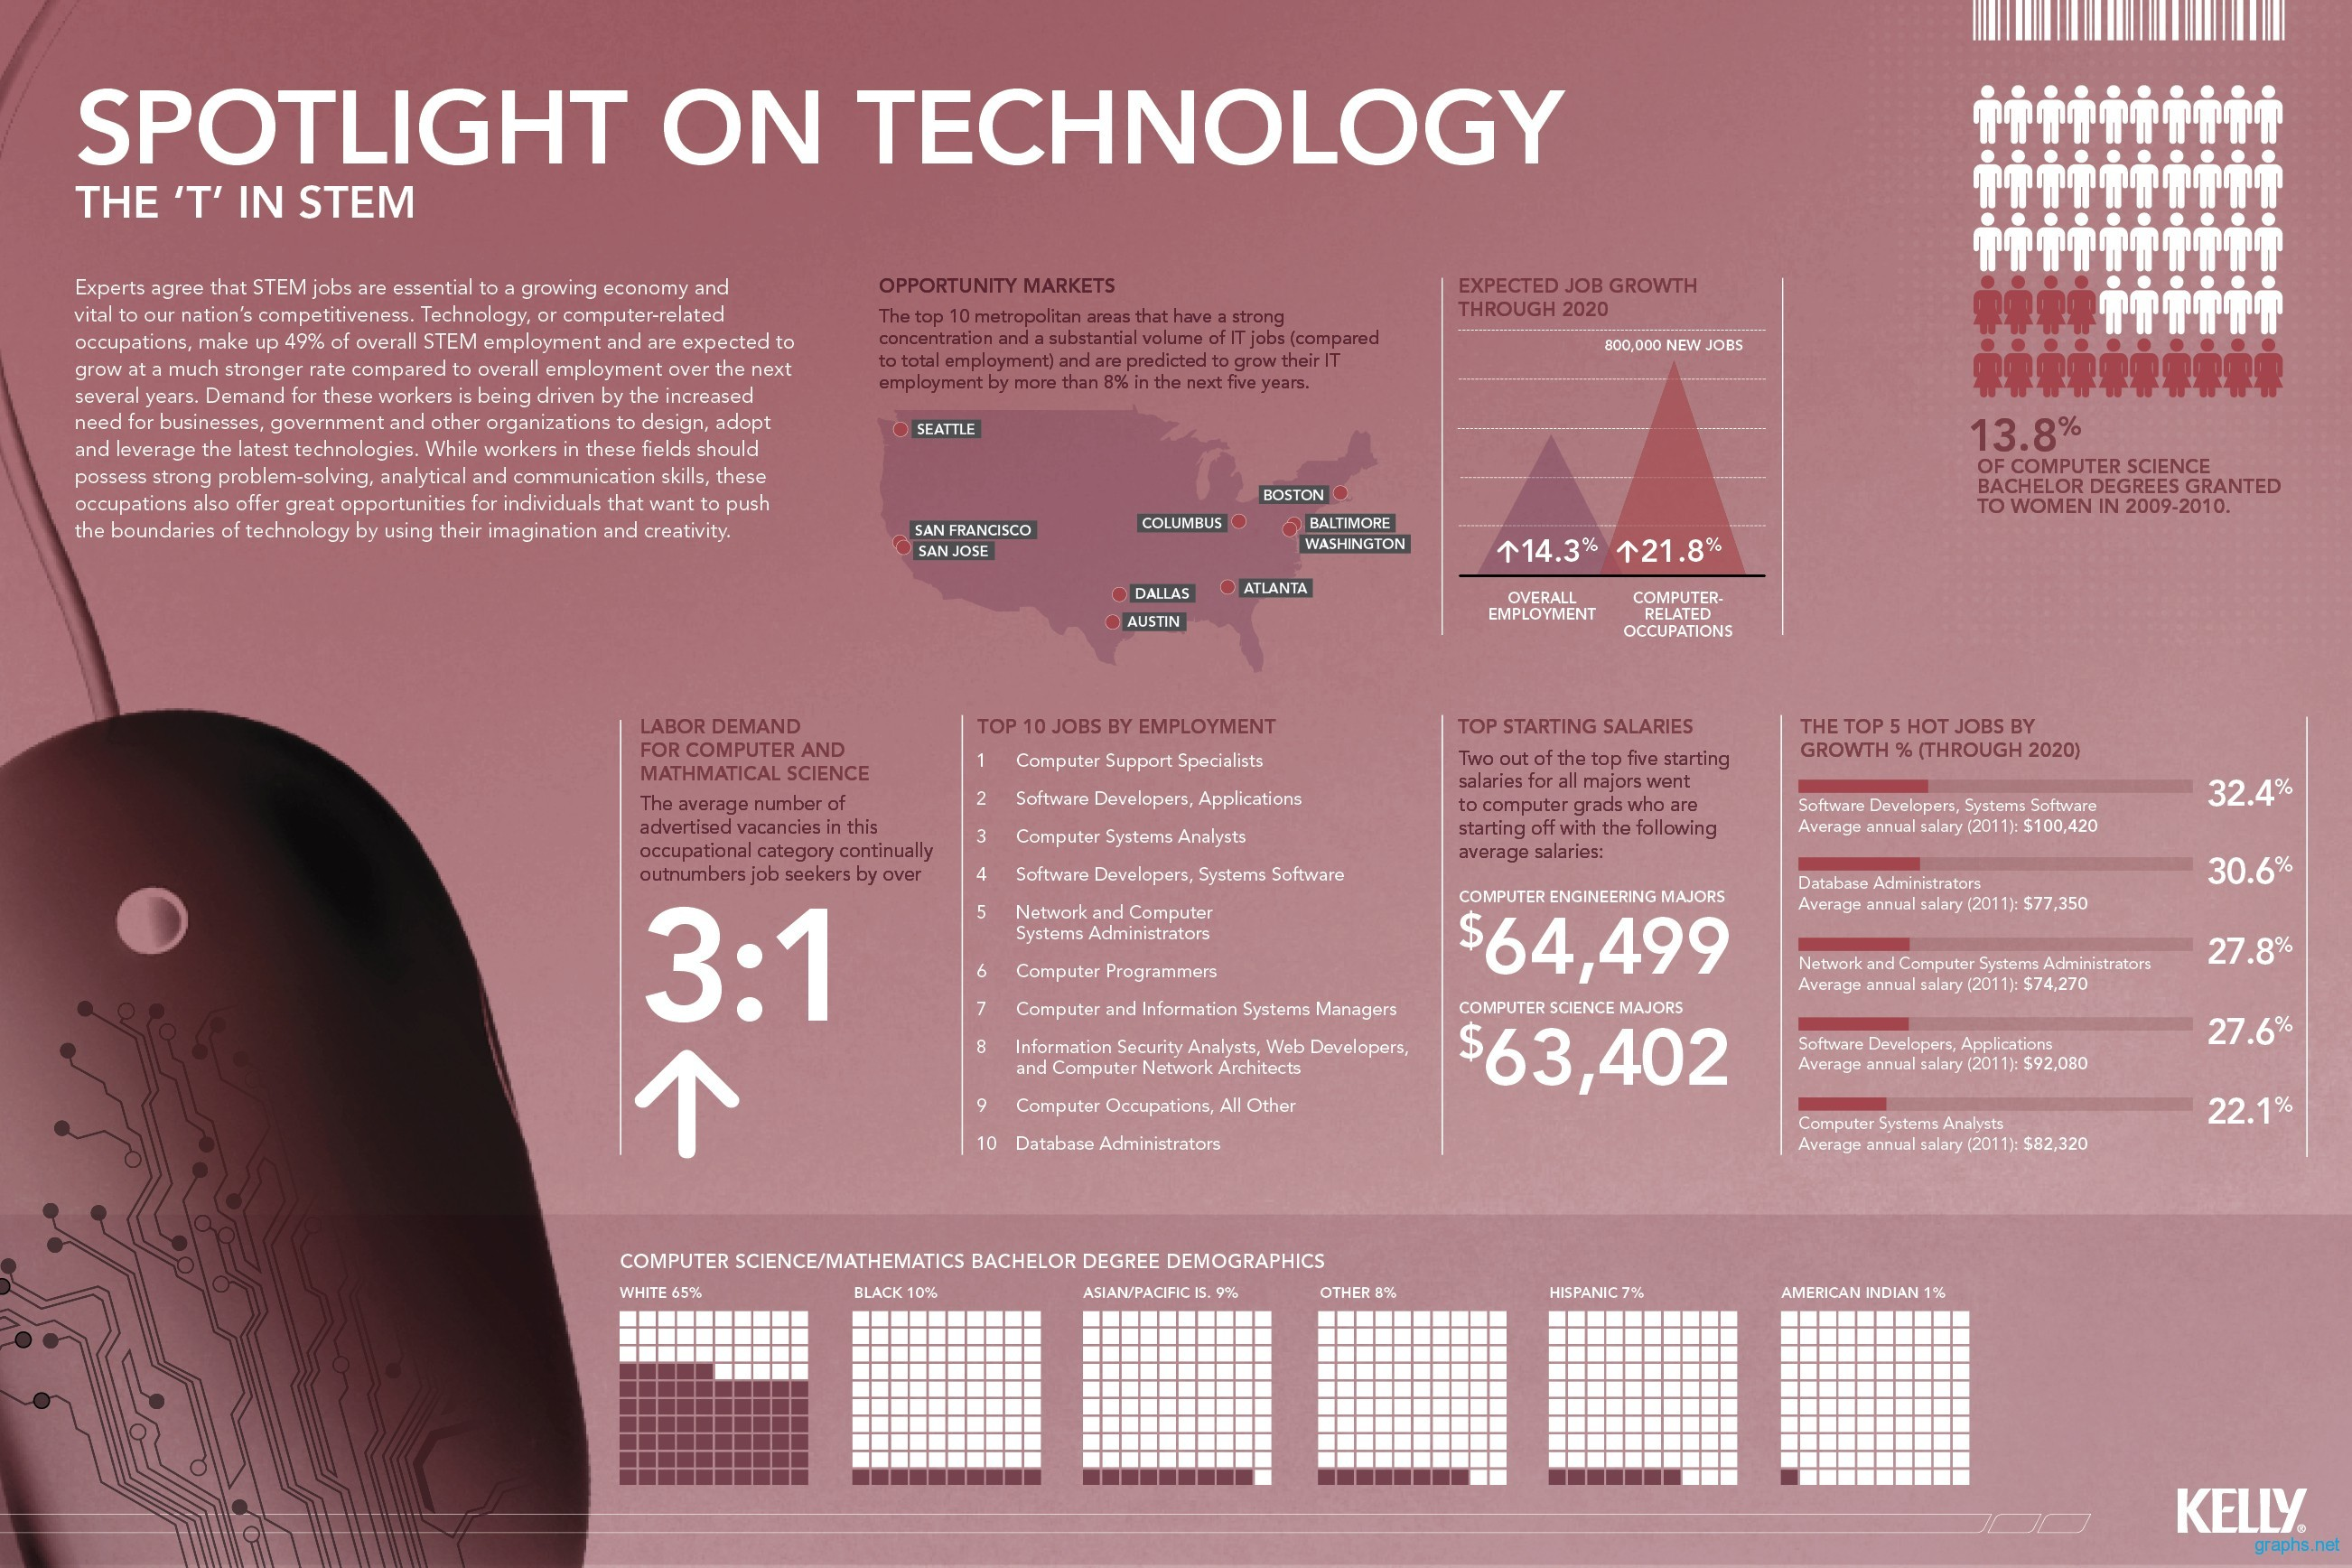 Latest Opportunities and Challenges in Technology Sector